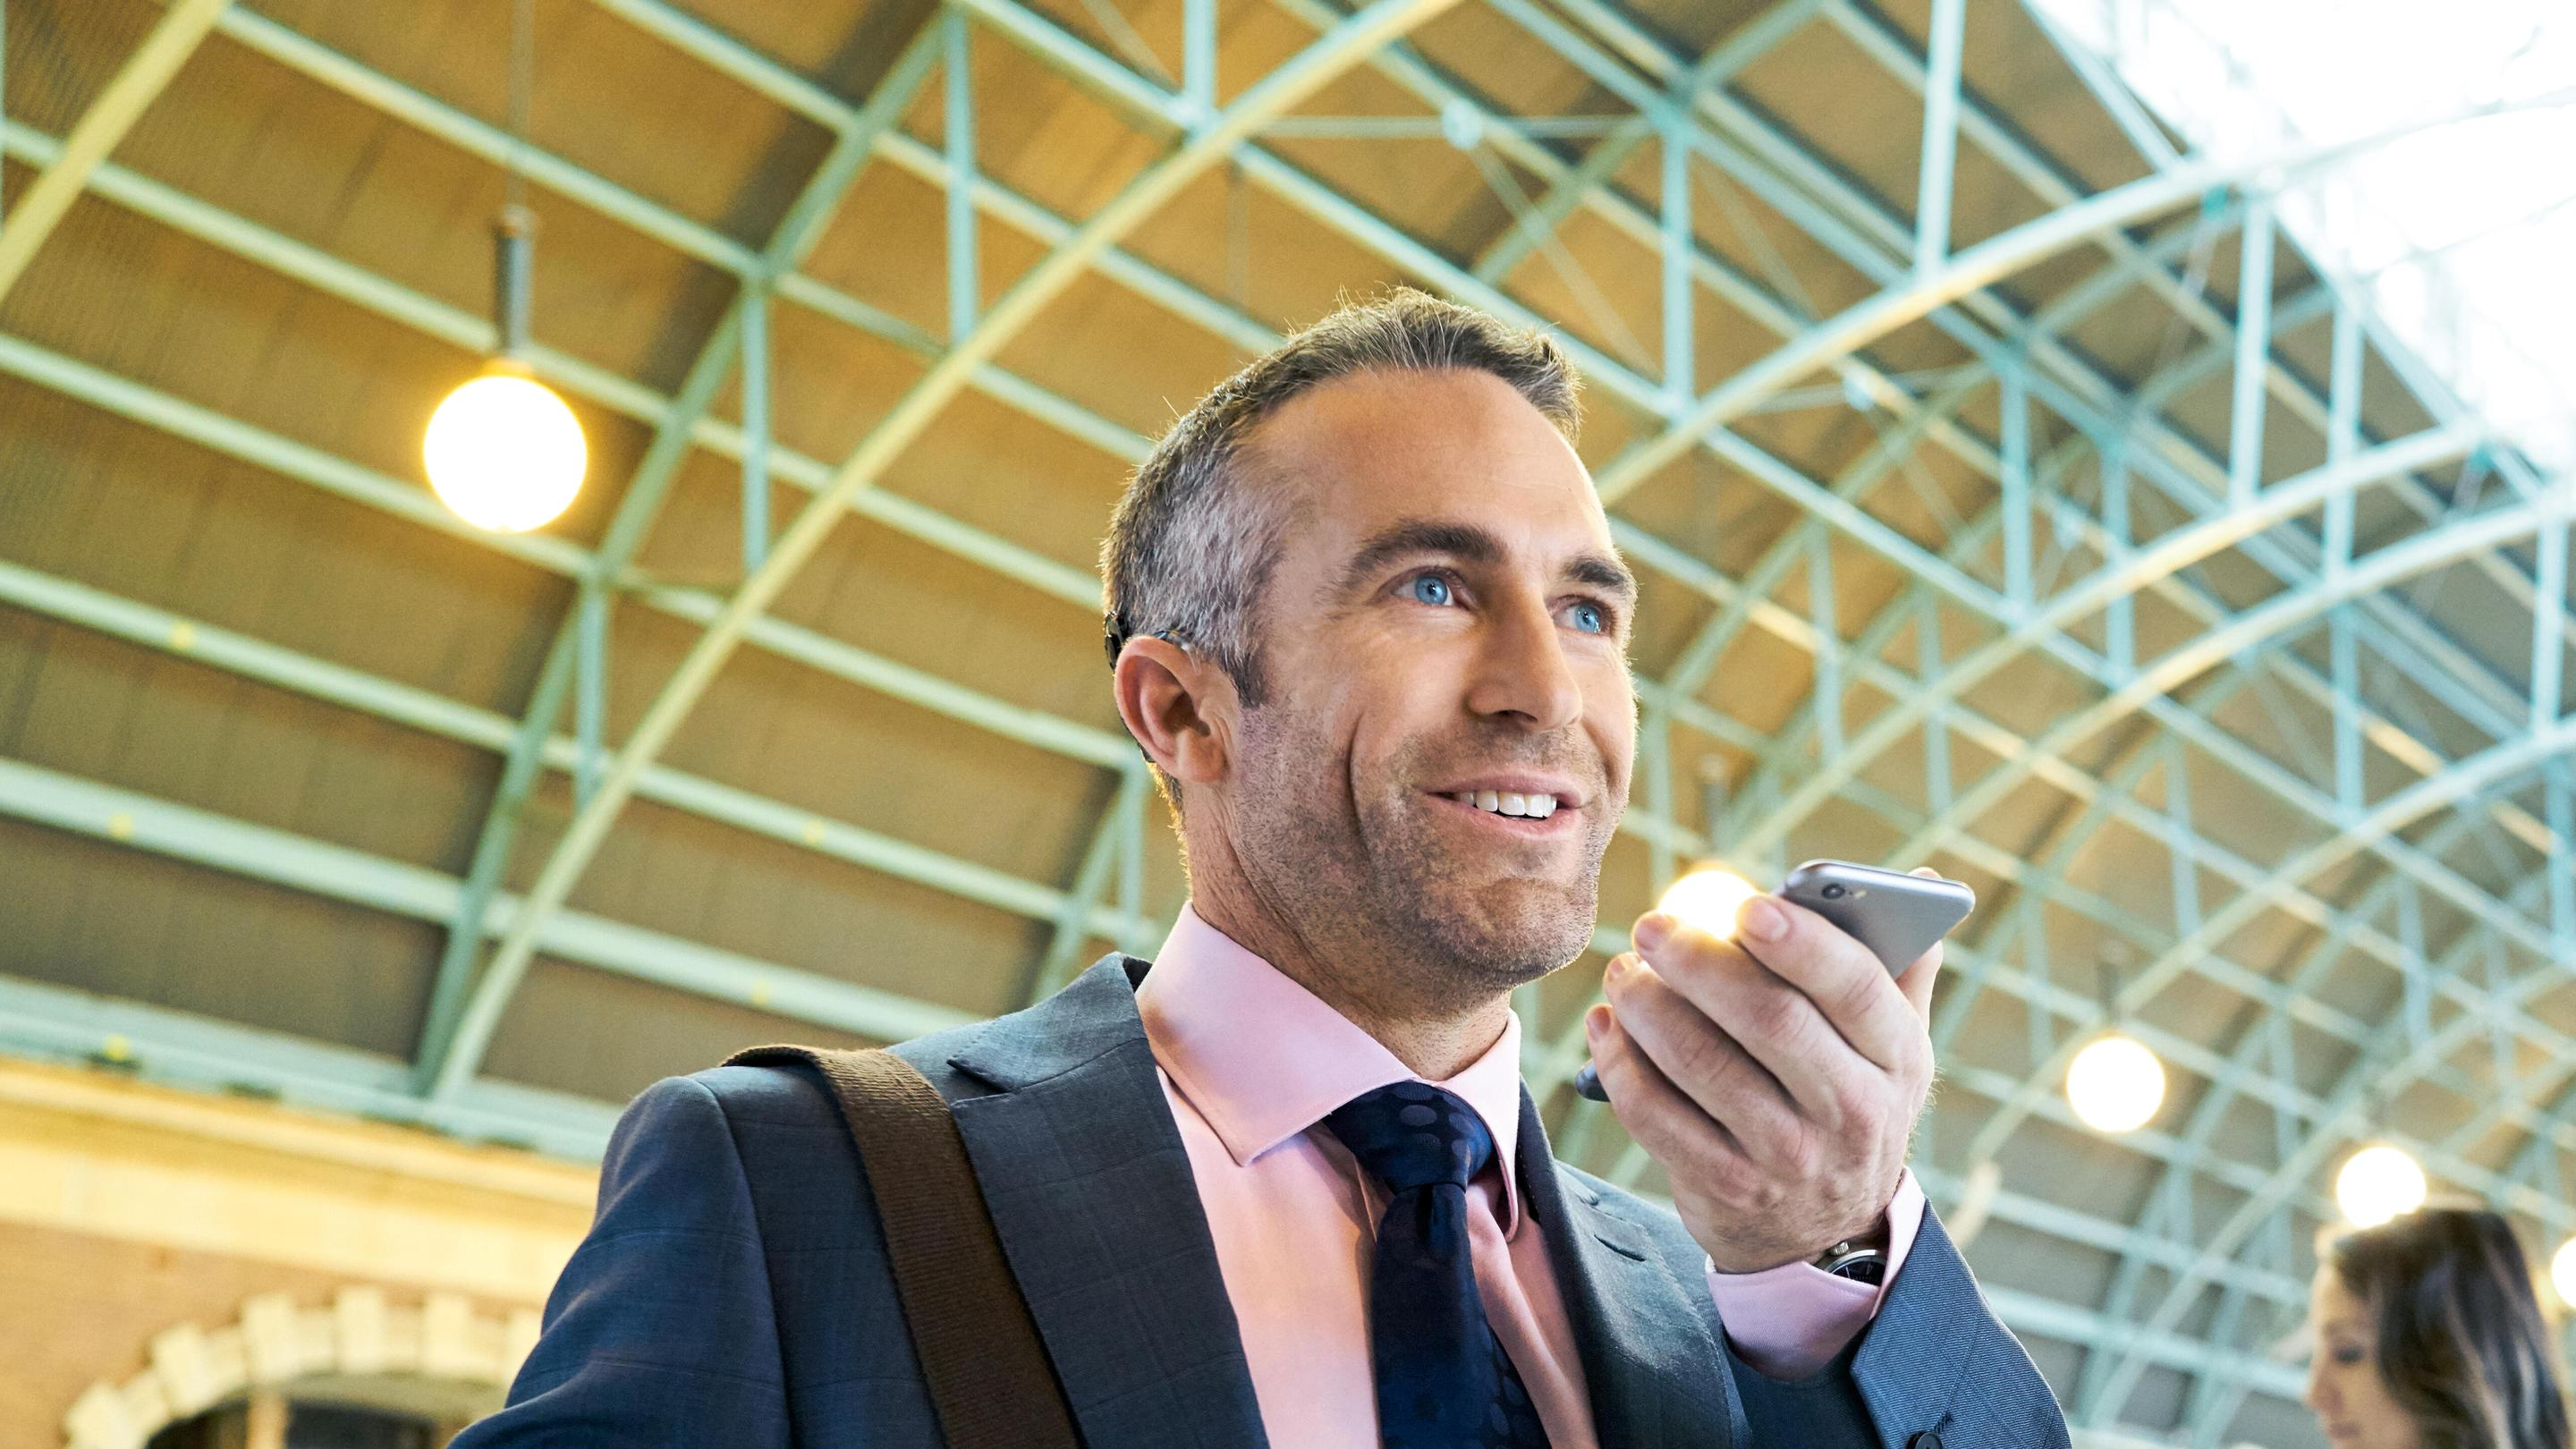 A man wearing an implant chats on a smartphone